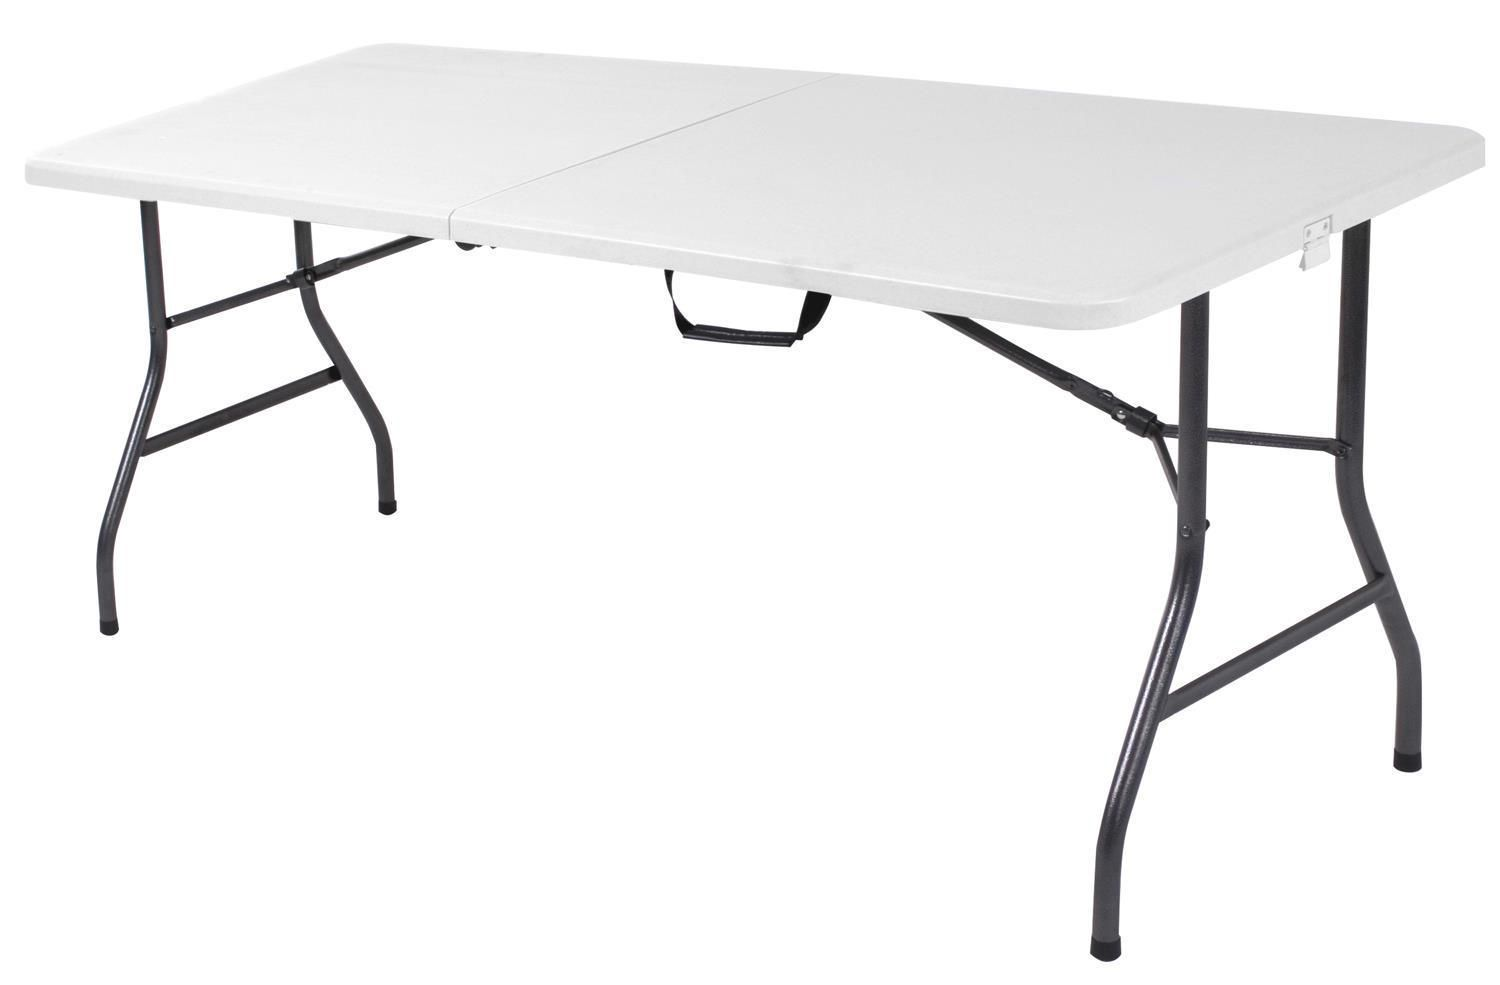 Cosco 6 Ft Centerfold Folding Table Canada - How Much Are Folding Tables At Costco Canada